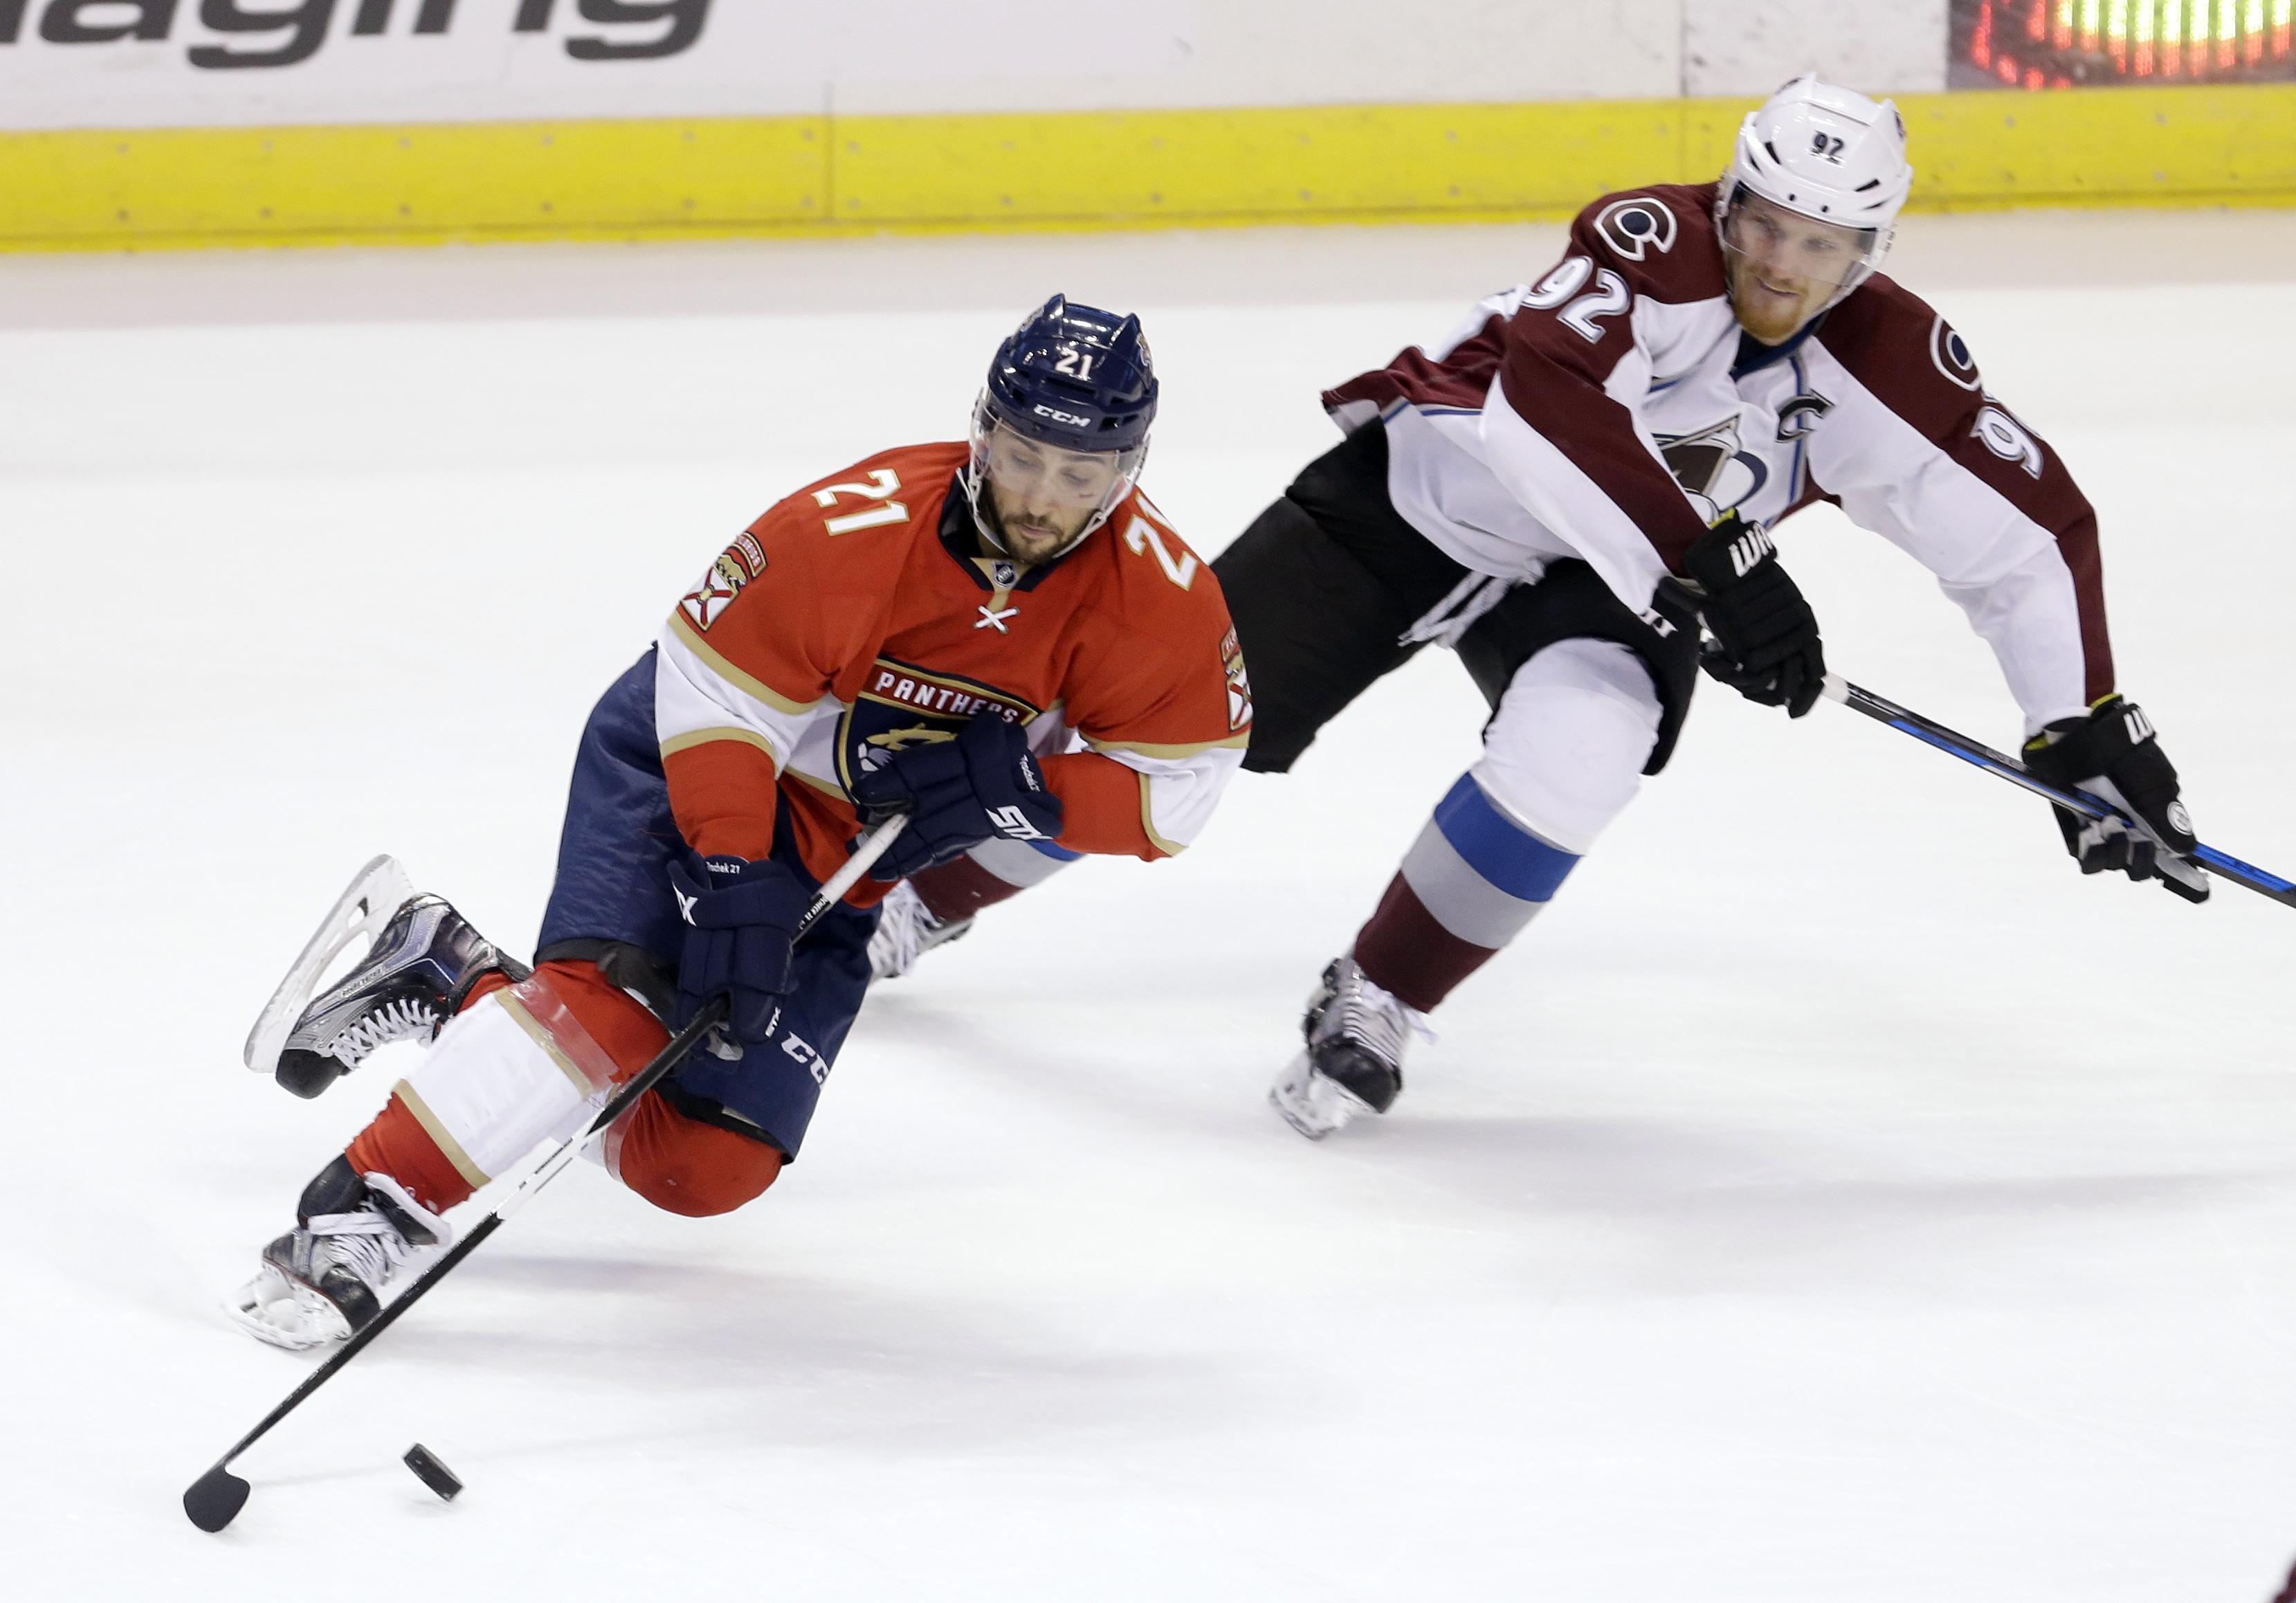 Avalanche_panthers_hockey